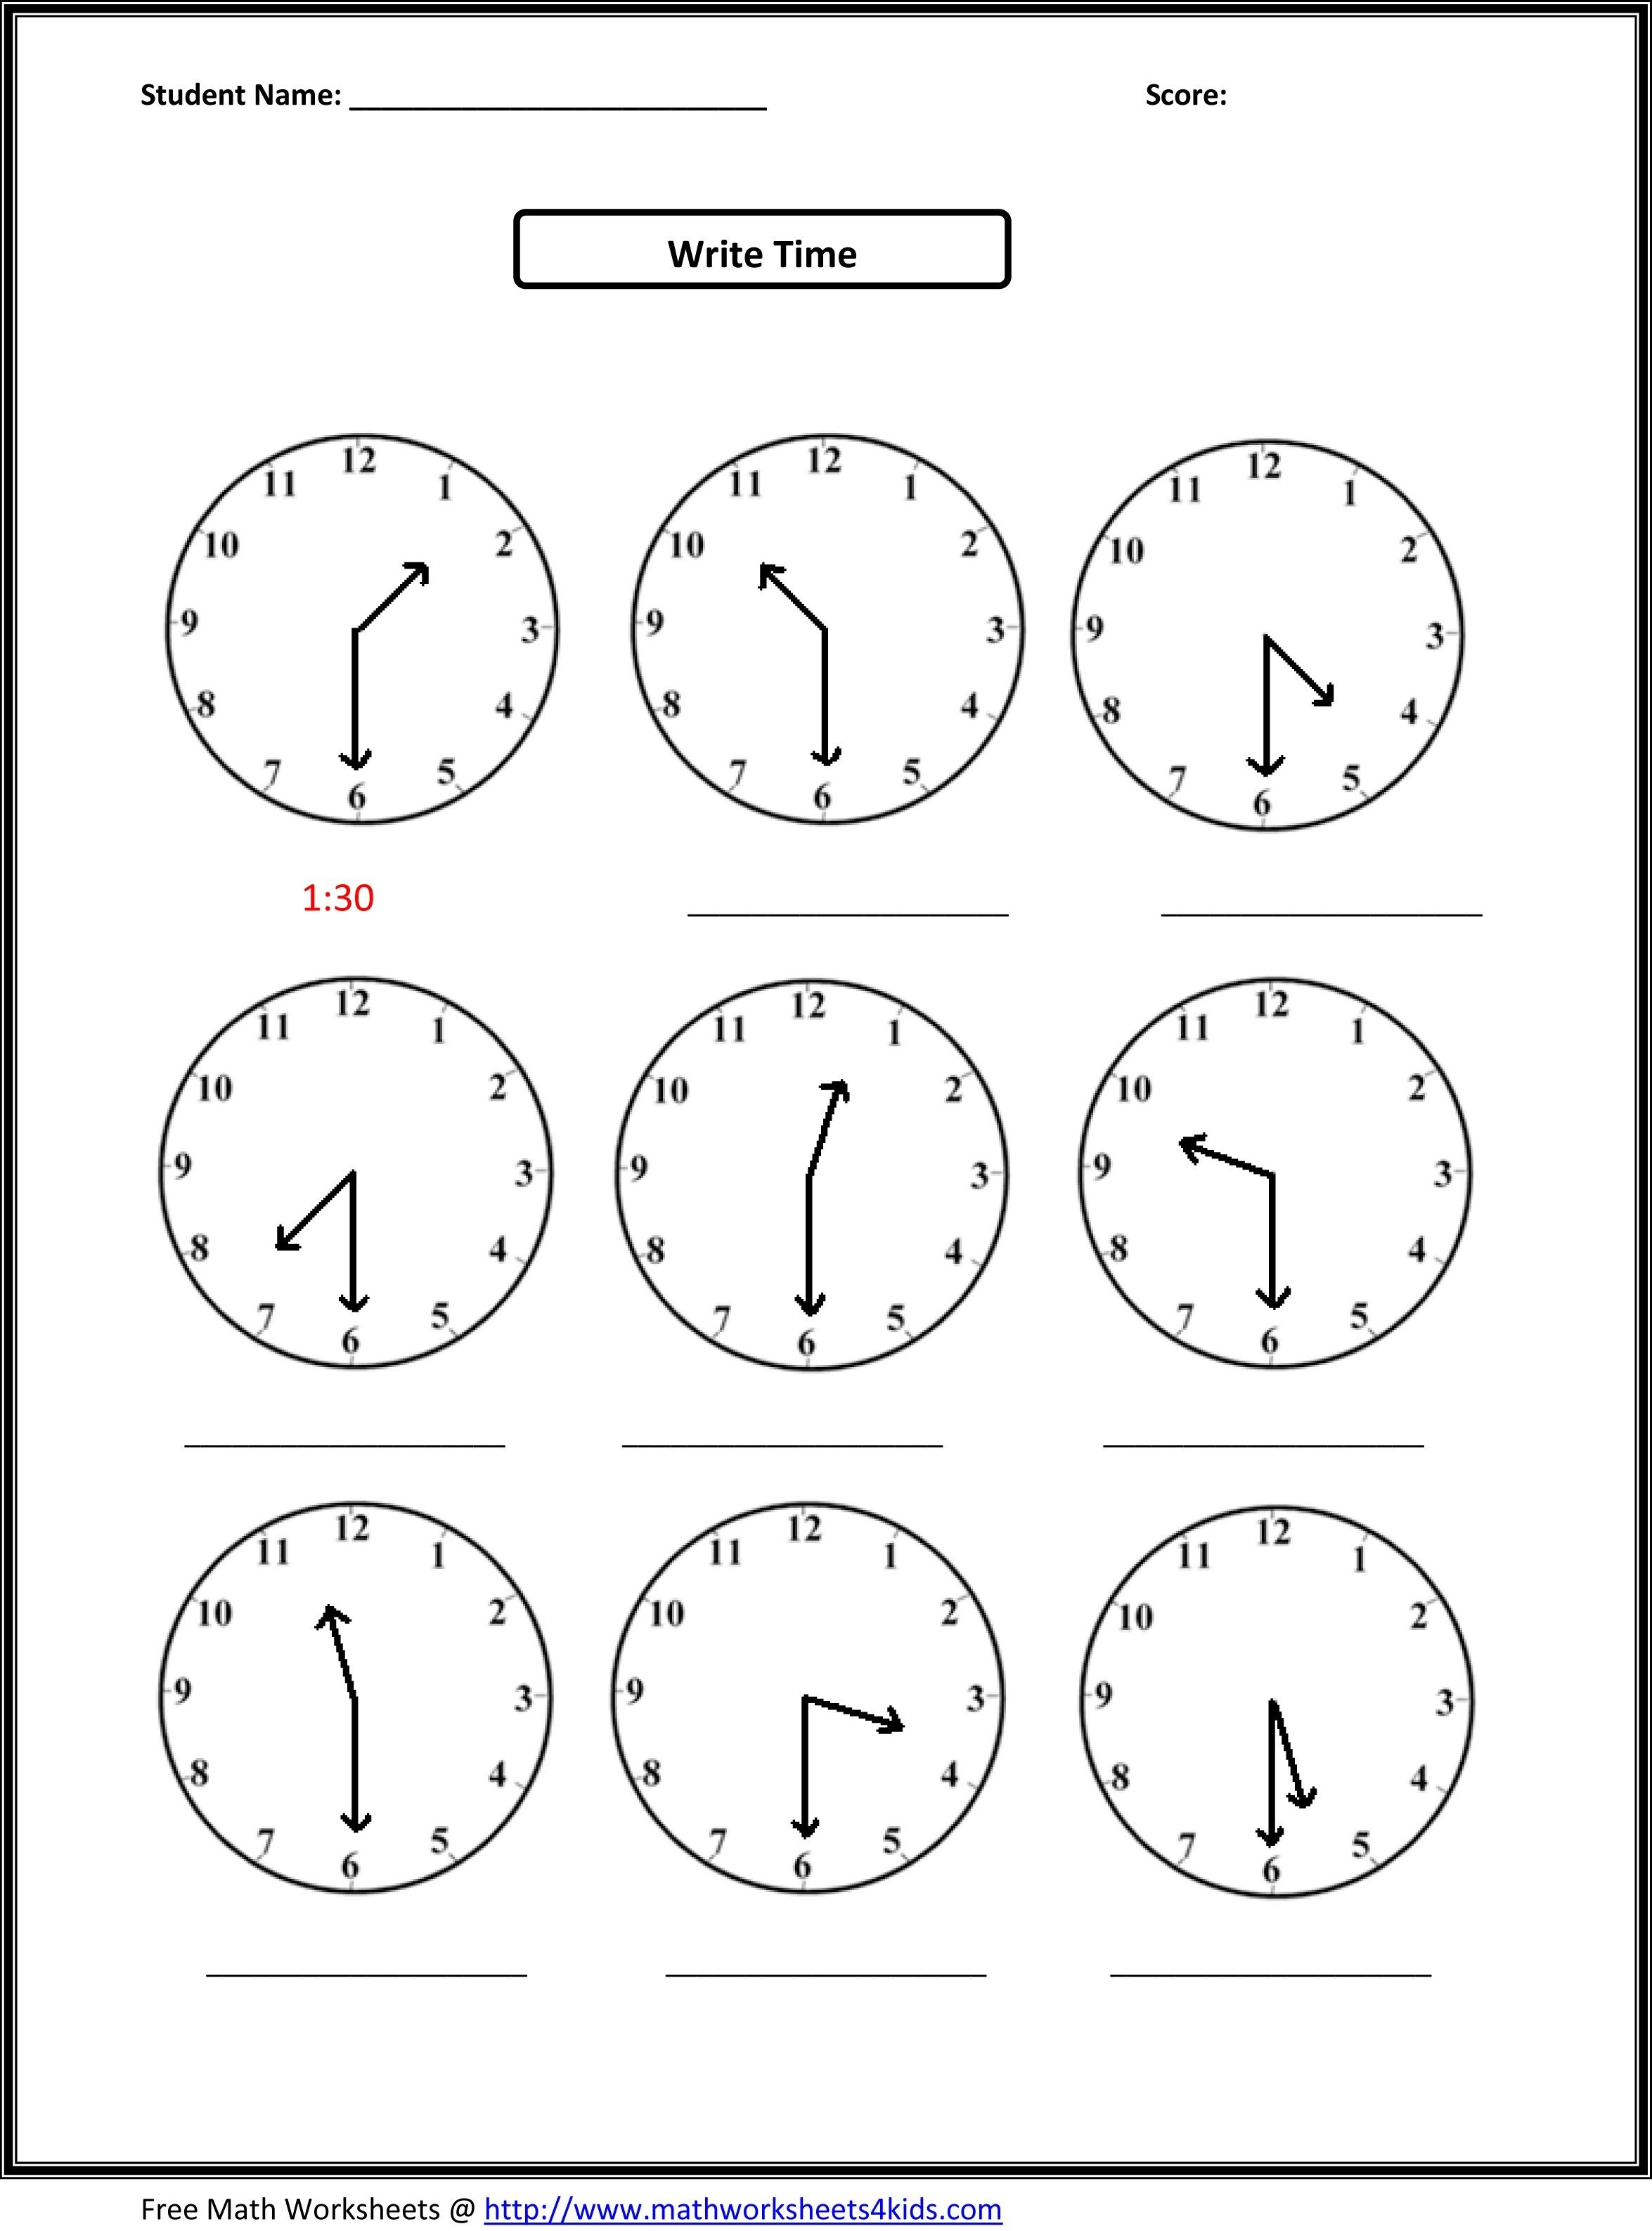 2Nd Grade Free Worksheets Math | Math: Time/measurement | 2Nd Grade - Free Printable Telling Time Worksheets For 1St Grade